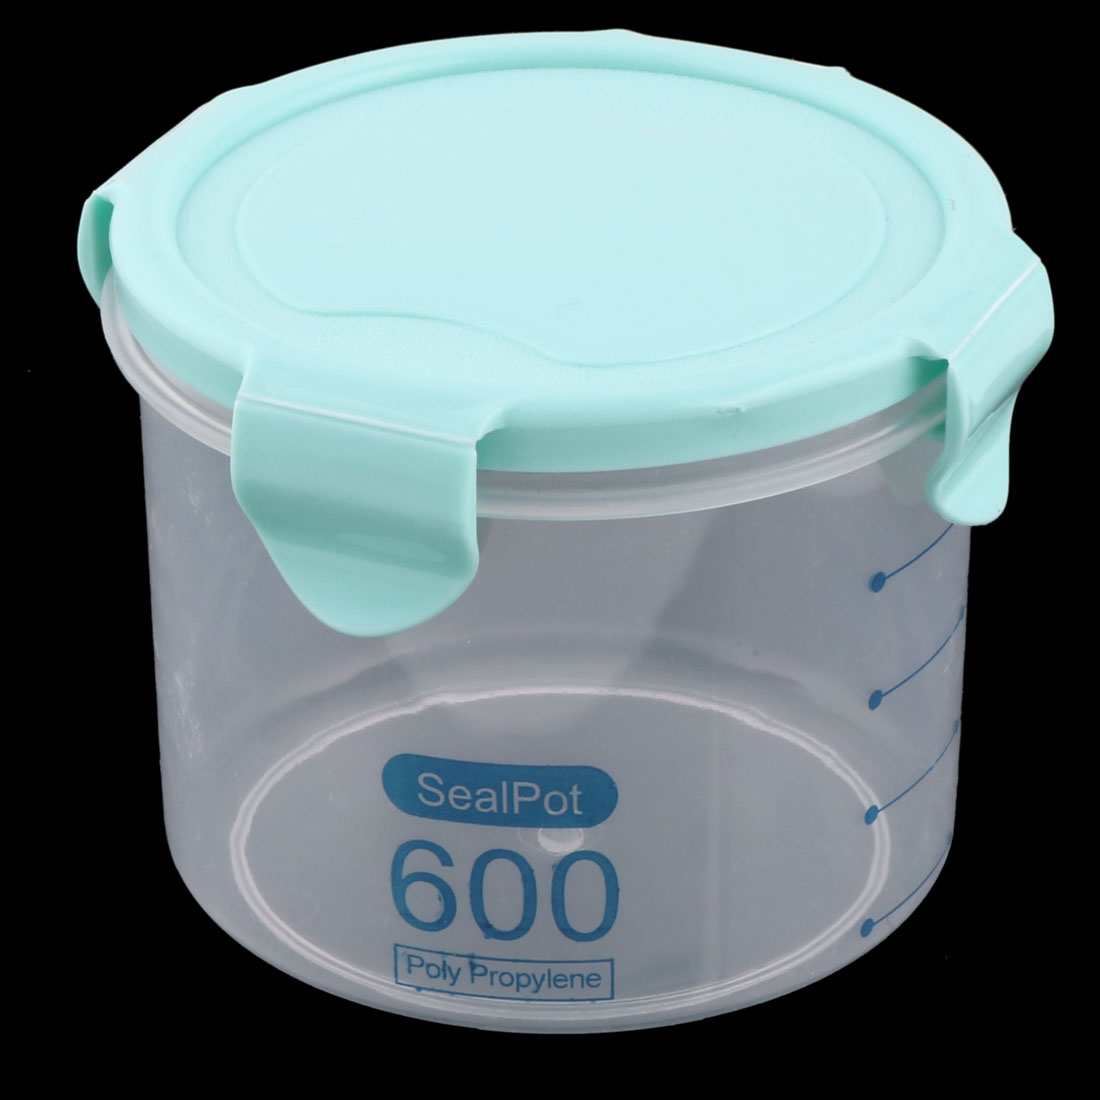 Home PP Cylinder Sealed Candy Fruit Food Storage Container Box Case Cyan 600ml - image 3 de 4